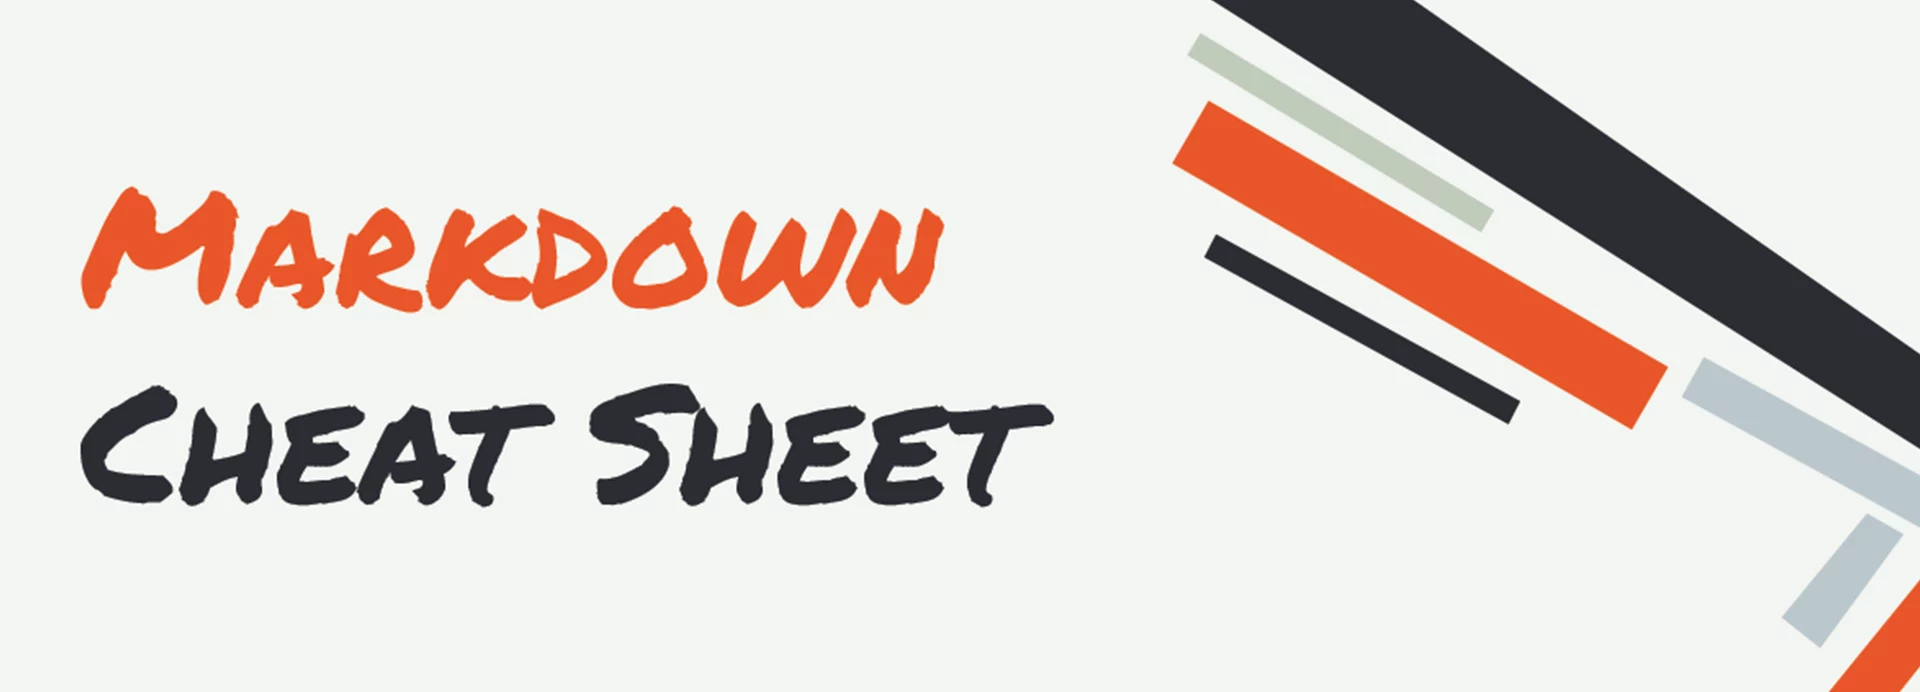 A markdown cheat sheet app made with Svelte.